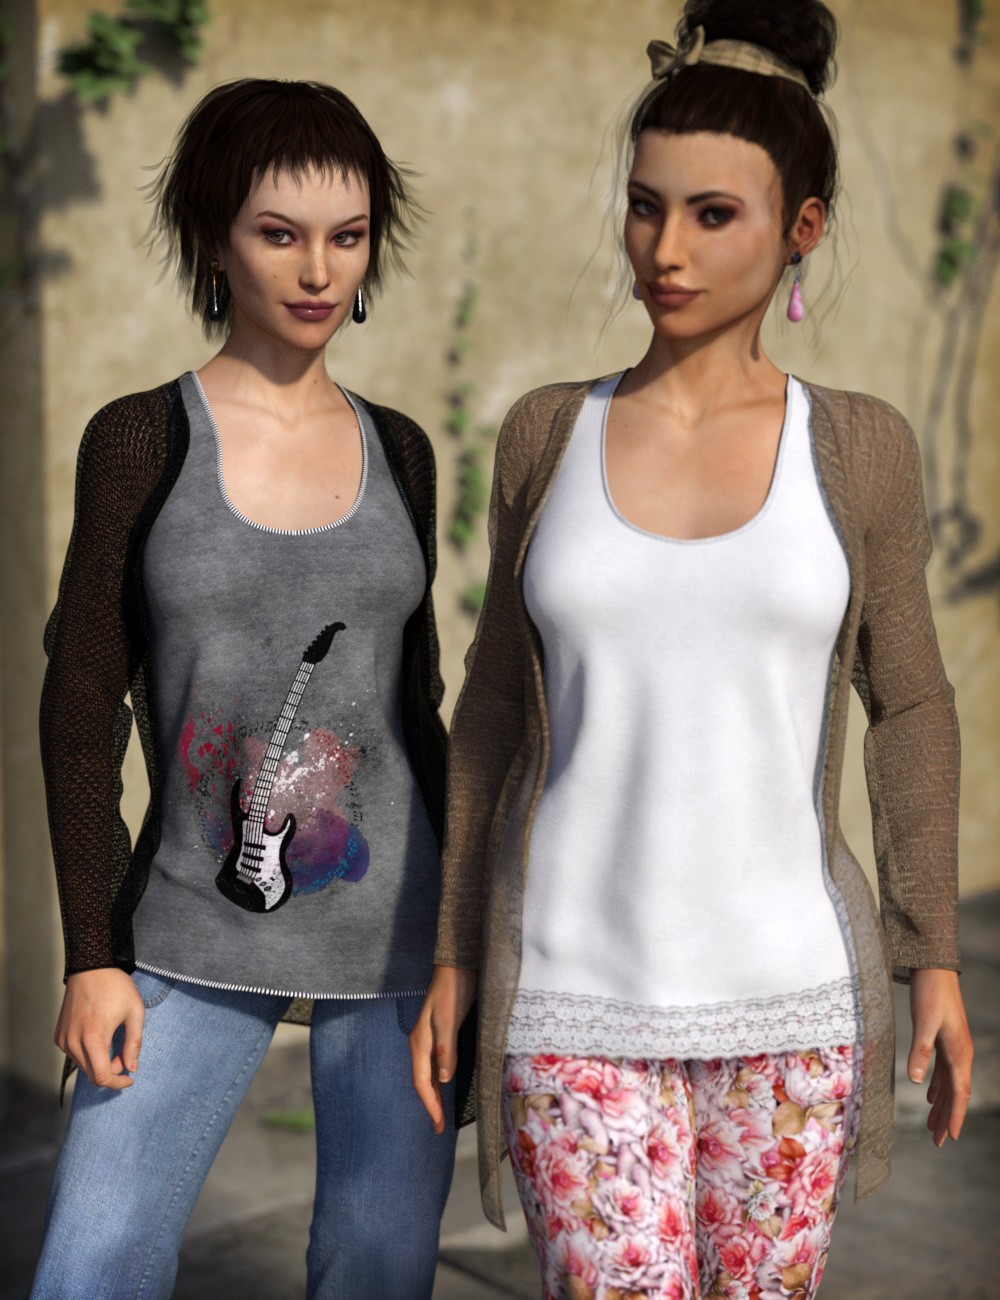 Casual Tourist Experience Add-On by: esha, 3D Models by Daz 3D